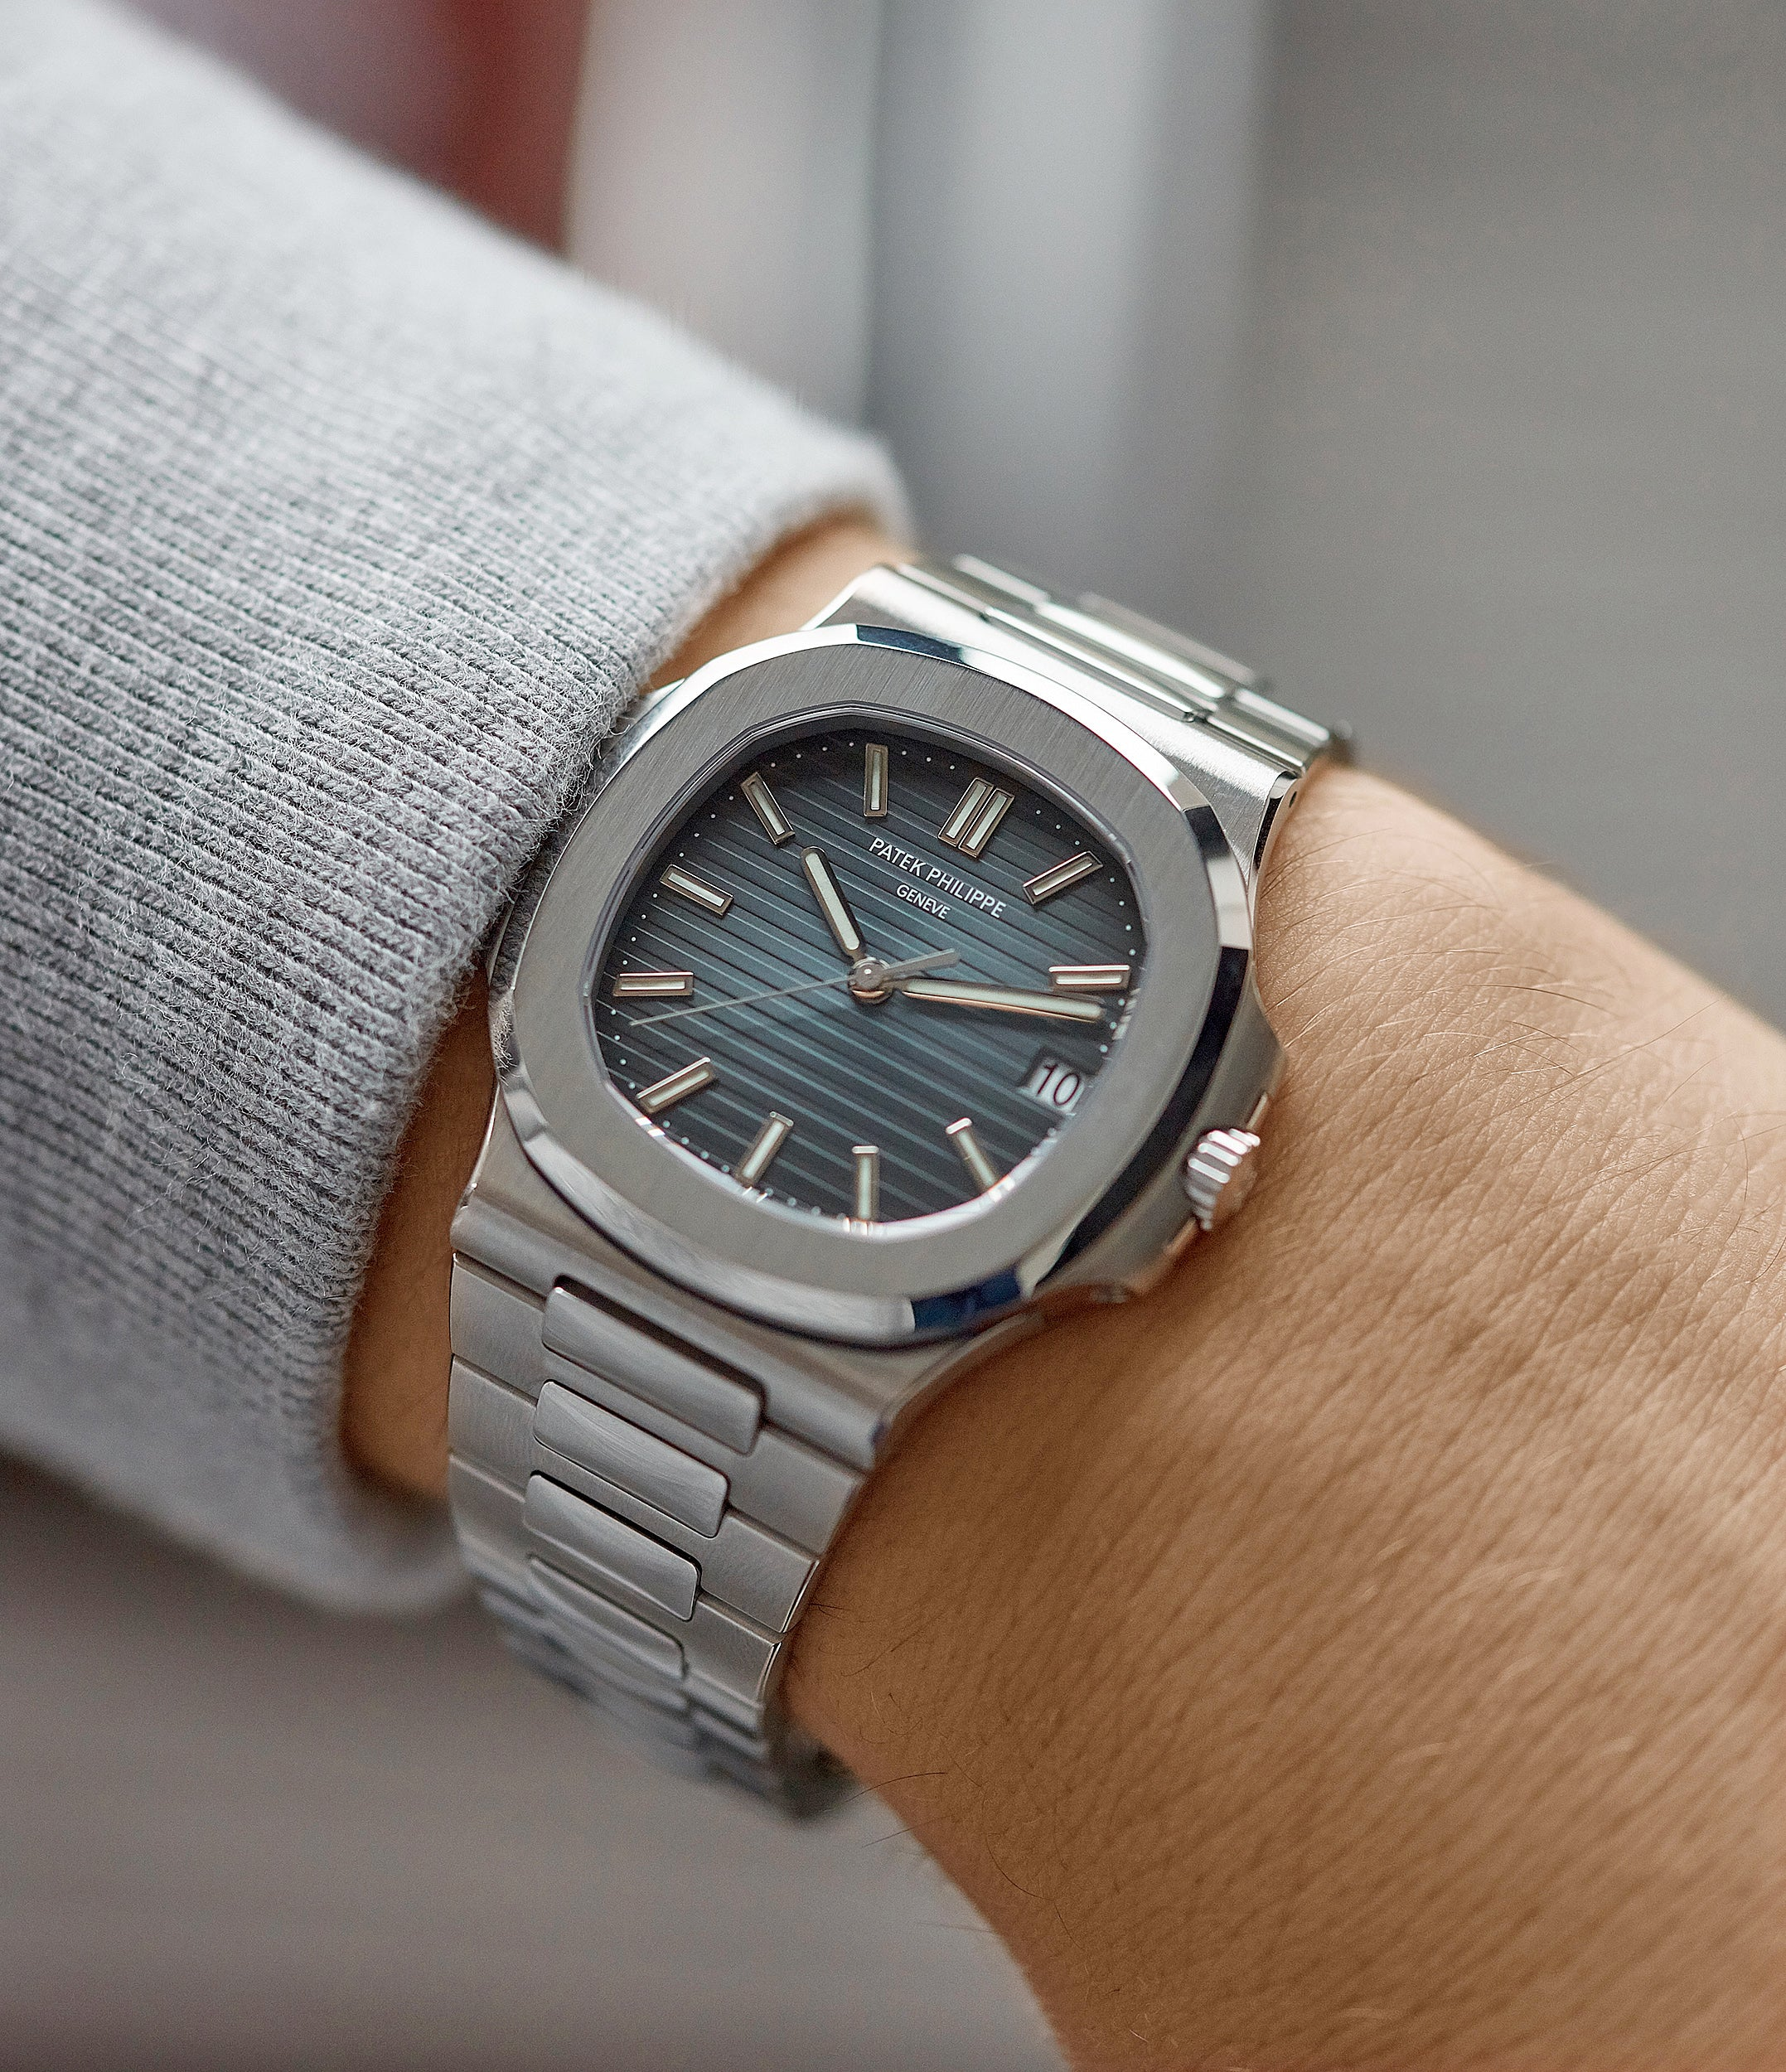 men's luxury sports watch 5711/1A-001 Patek Philippe Jumbo Nautilus steel pre-owned sport watch for sale online at A Collected Man London UK specialist of rare watches